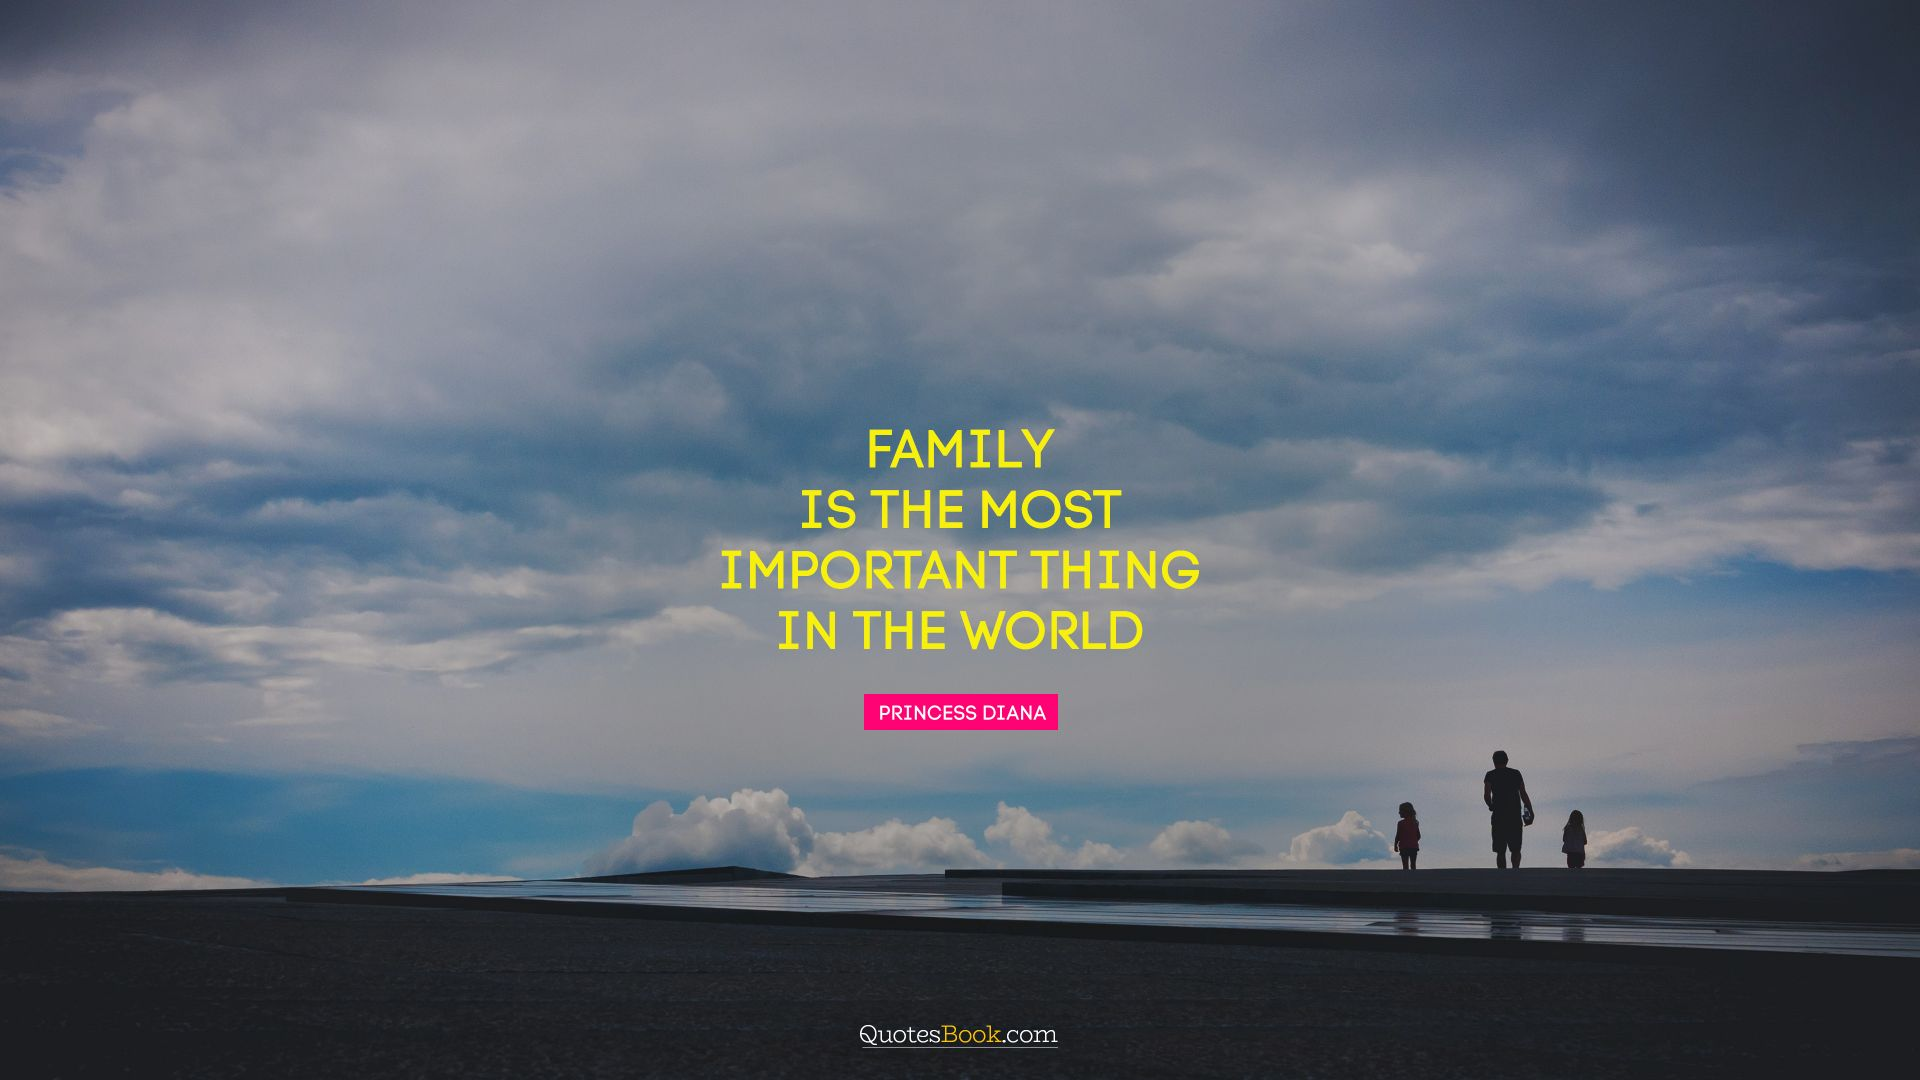 Family is the most important thing in the world. - Quote by Princess Diana